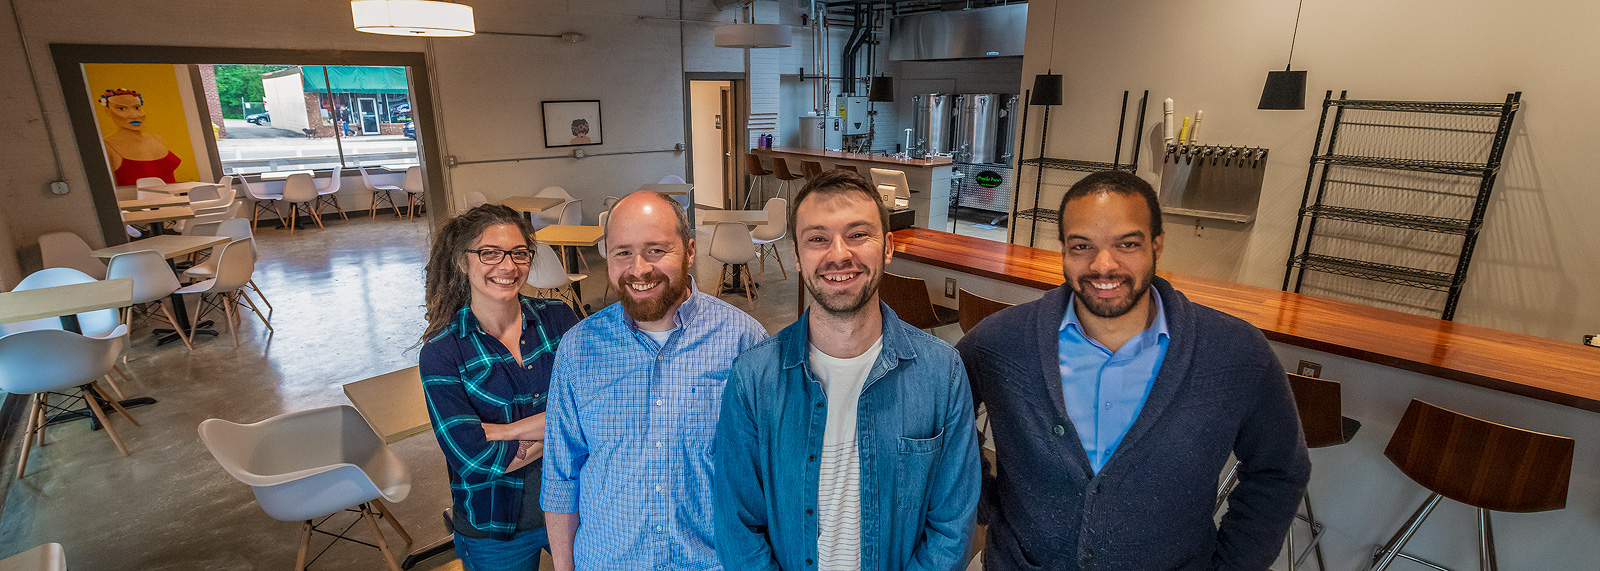 Mariah Gavin, Patrick Echlin, Alex Merz and Brian Jones-Chance inside of 734 Brewing Company <span class='image-credits'>Doug Coombe</span>